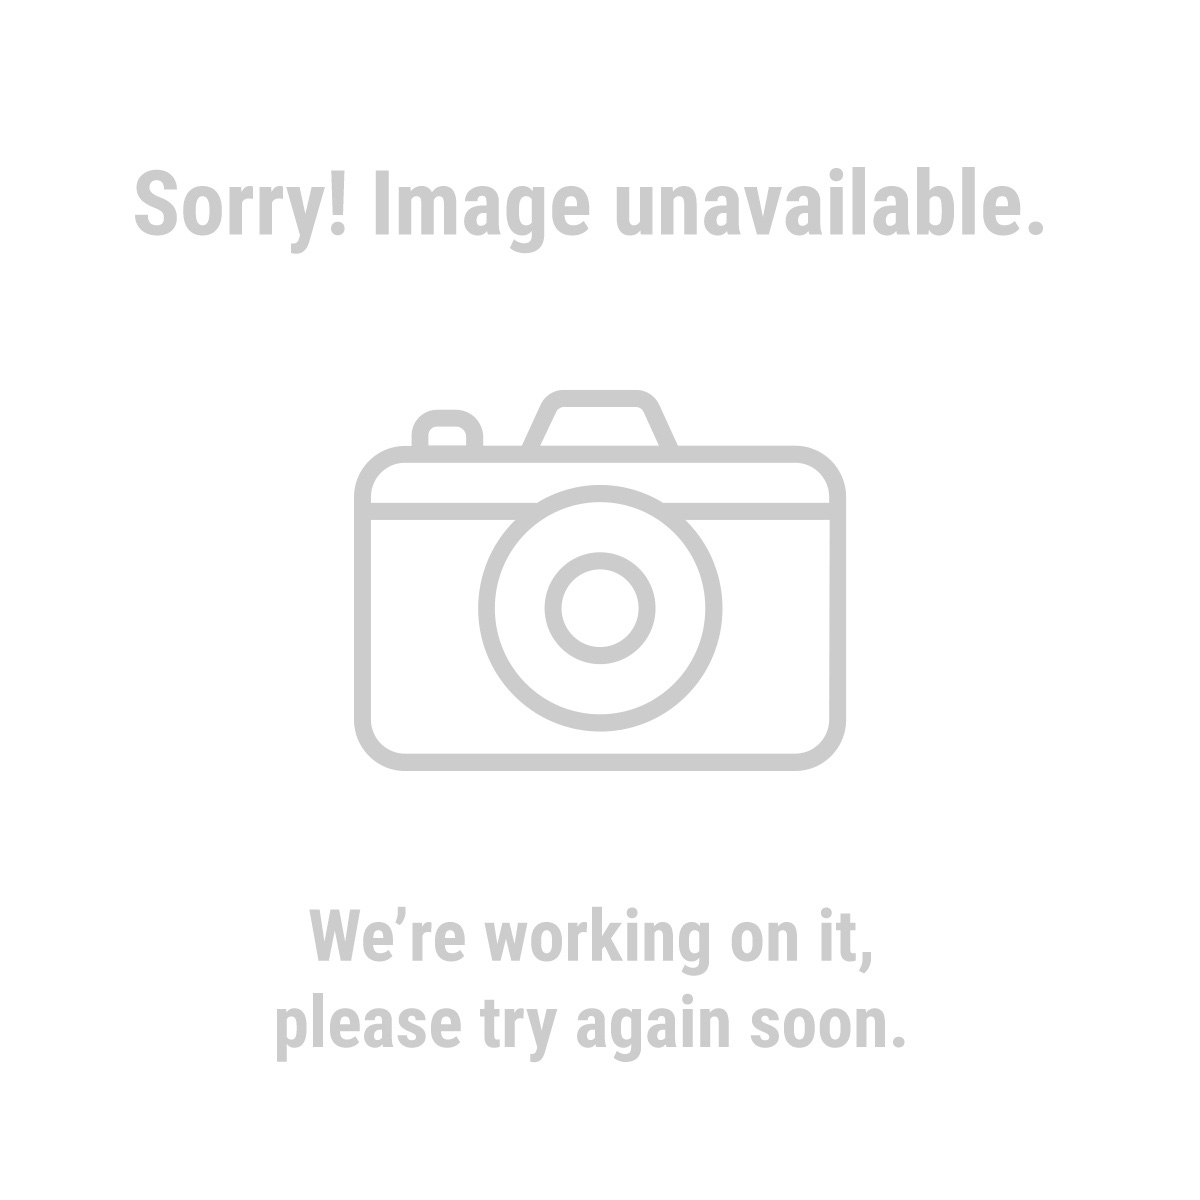 Magnificent Hf 44 Or Milwaukee 46 Tool Box The Garage Journal Board Machost Co Dining Chair Design Ideas Machostcouk